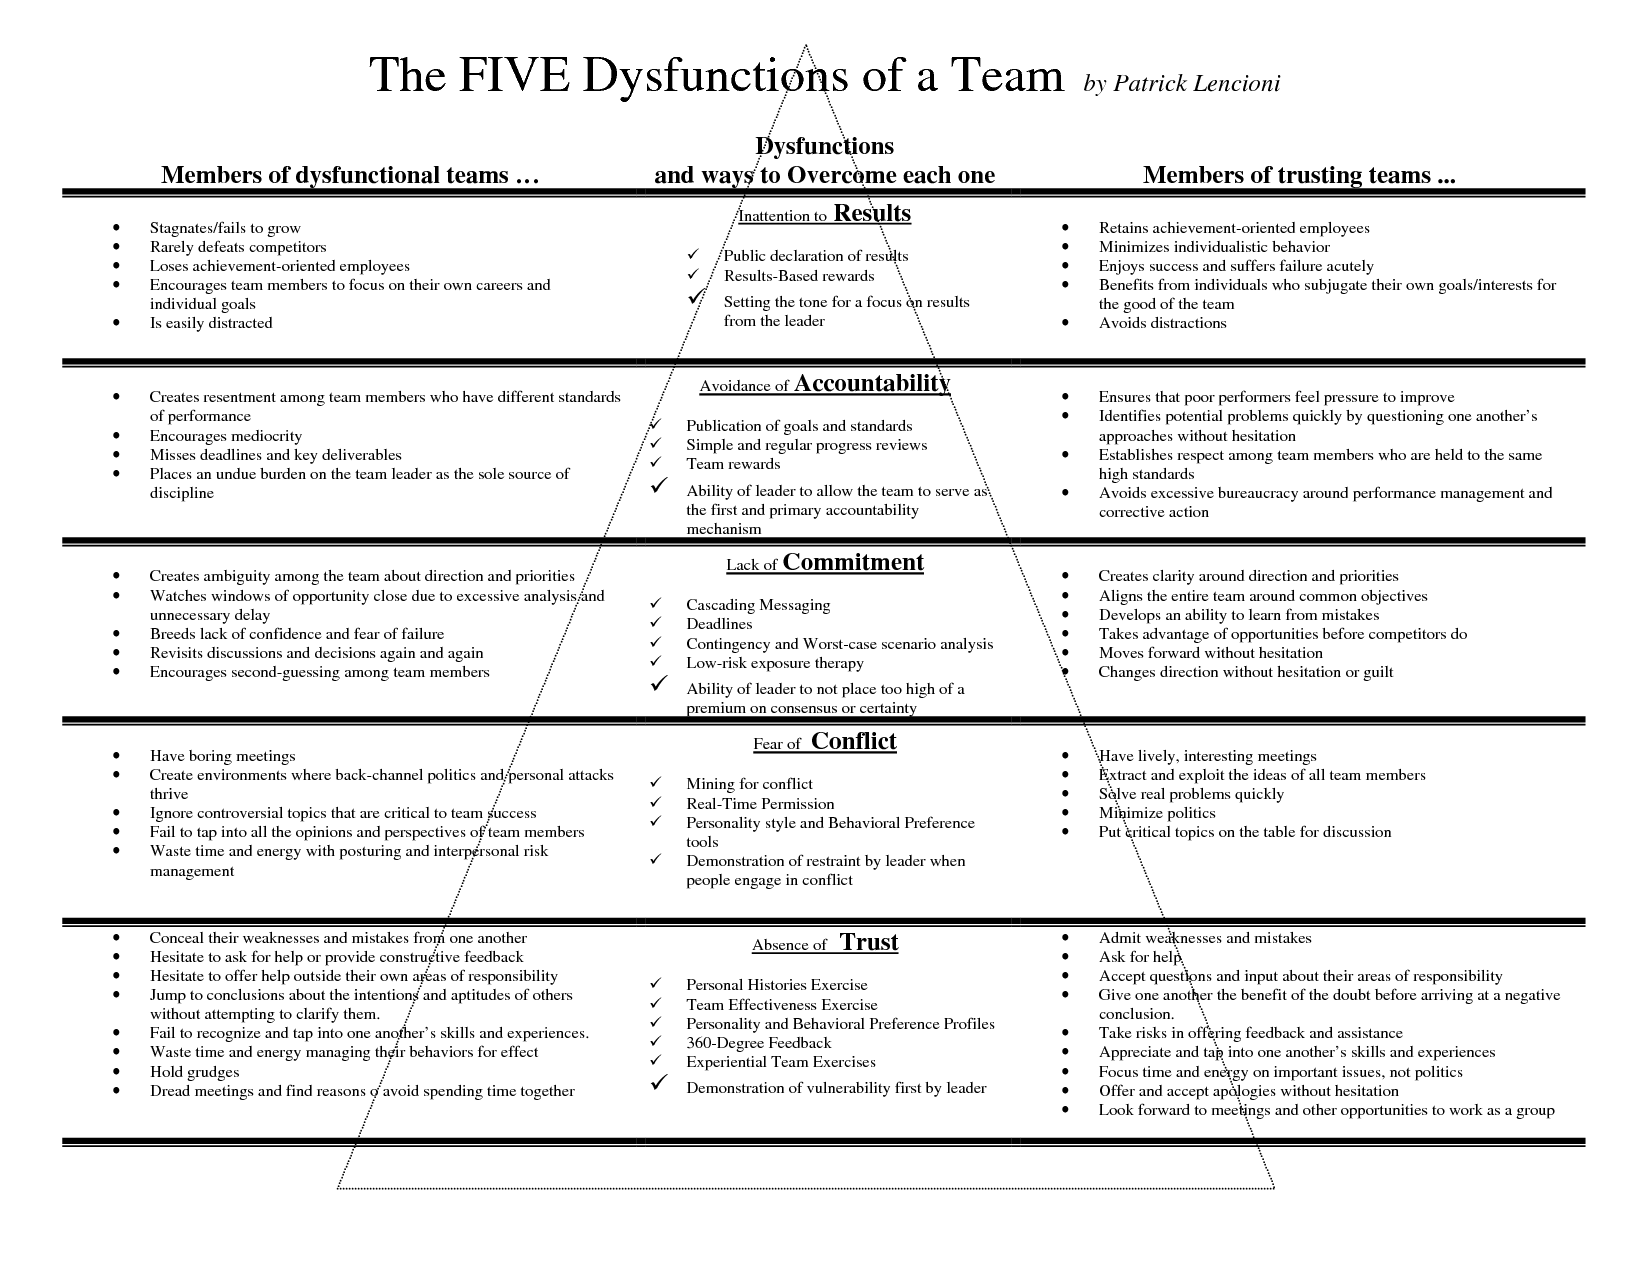 5 Dysfunctions Of A Teamessment